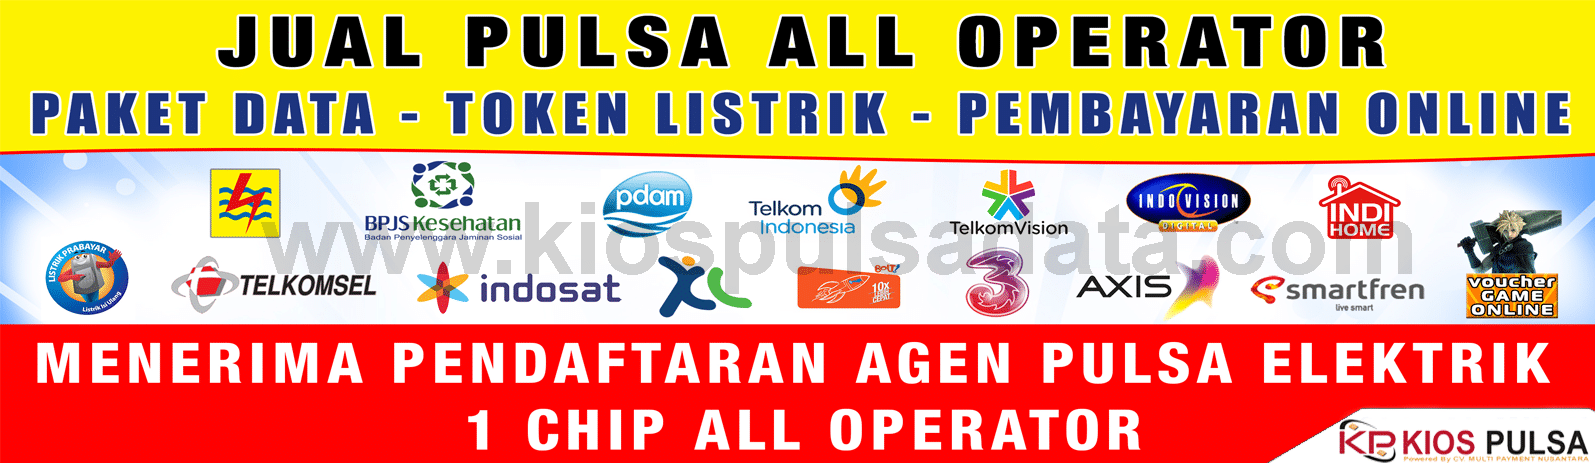 Agen inject paket internet all operator